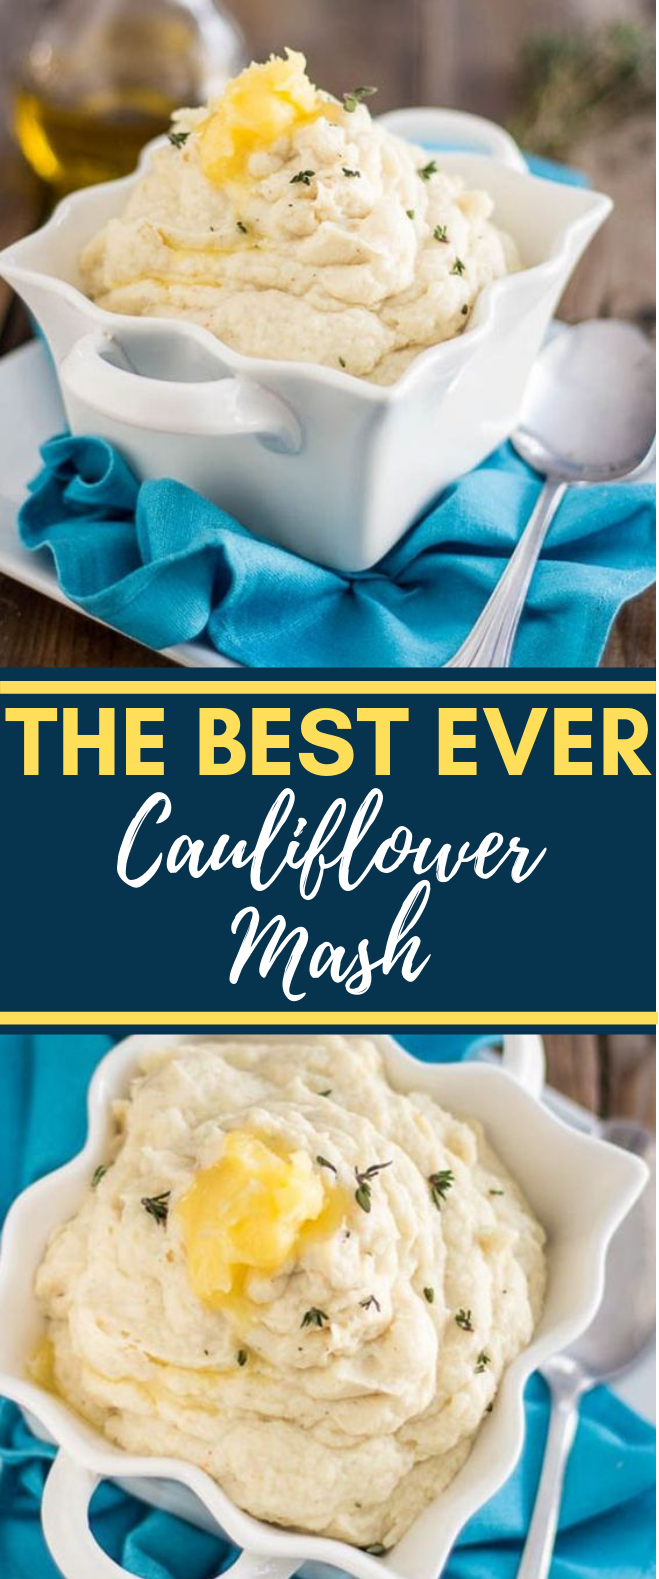 THE BEST CAULIFLOWER MASH EVER #HealthyFood #Keto